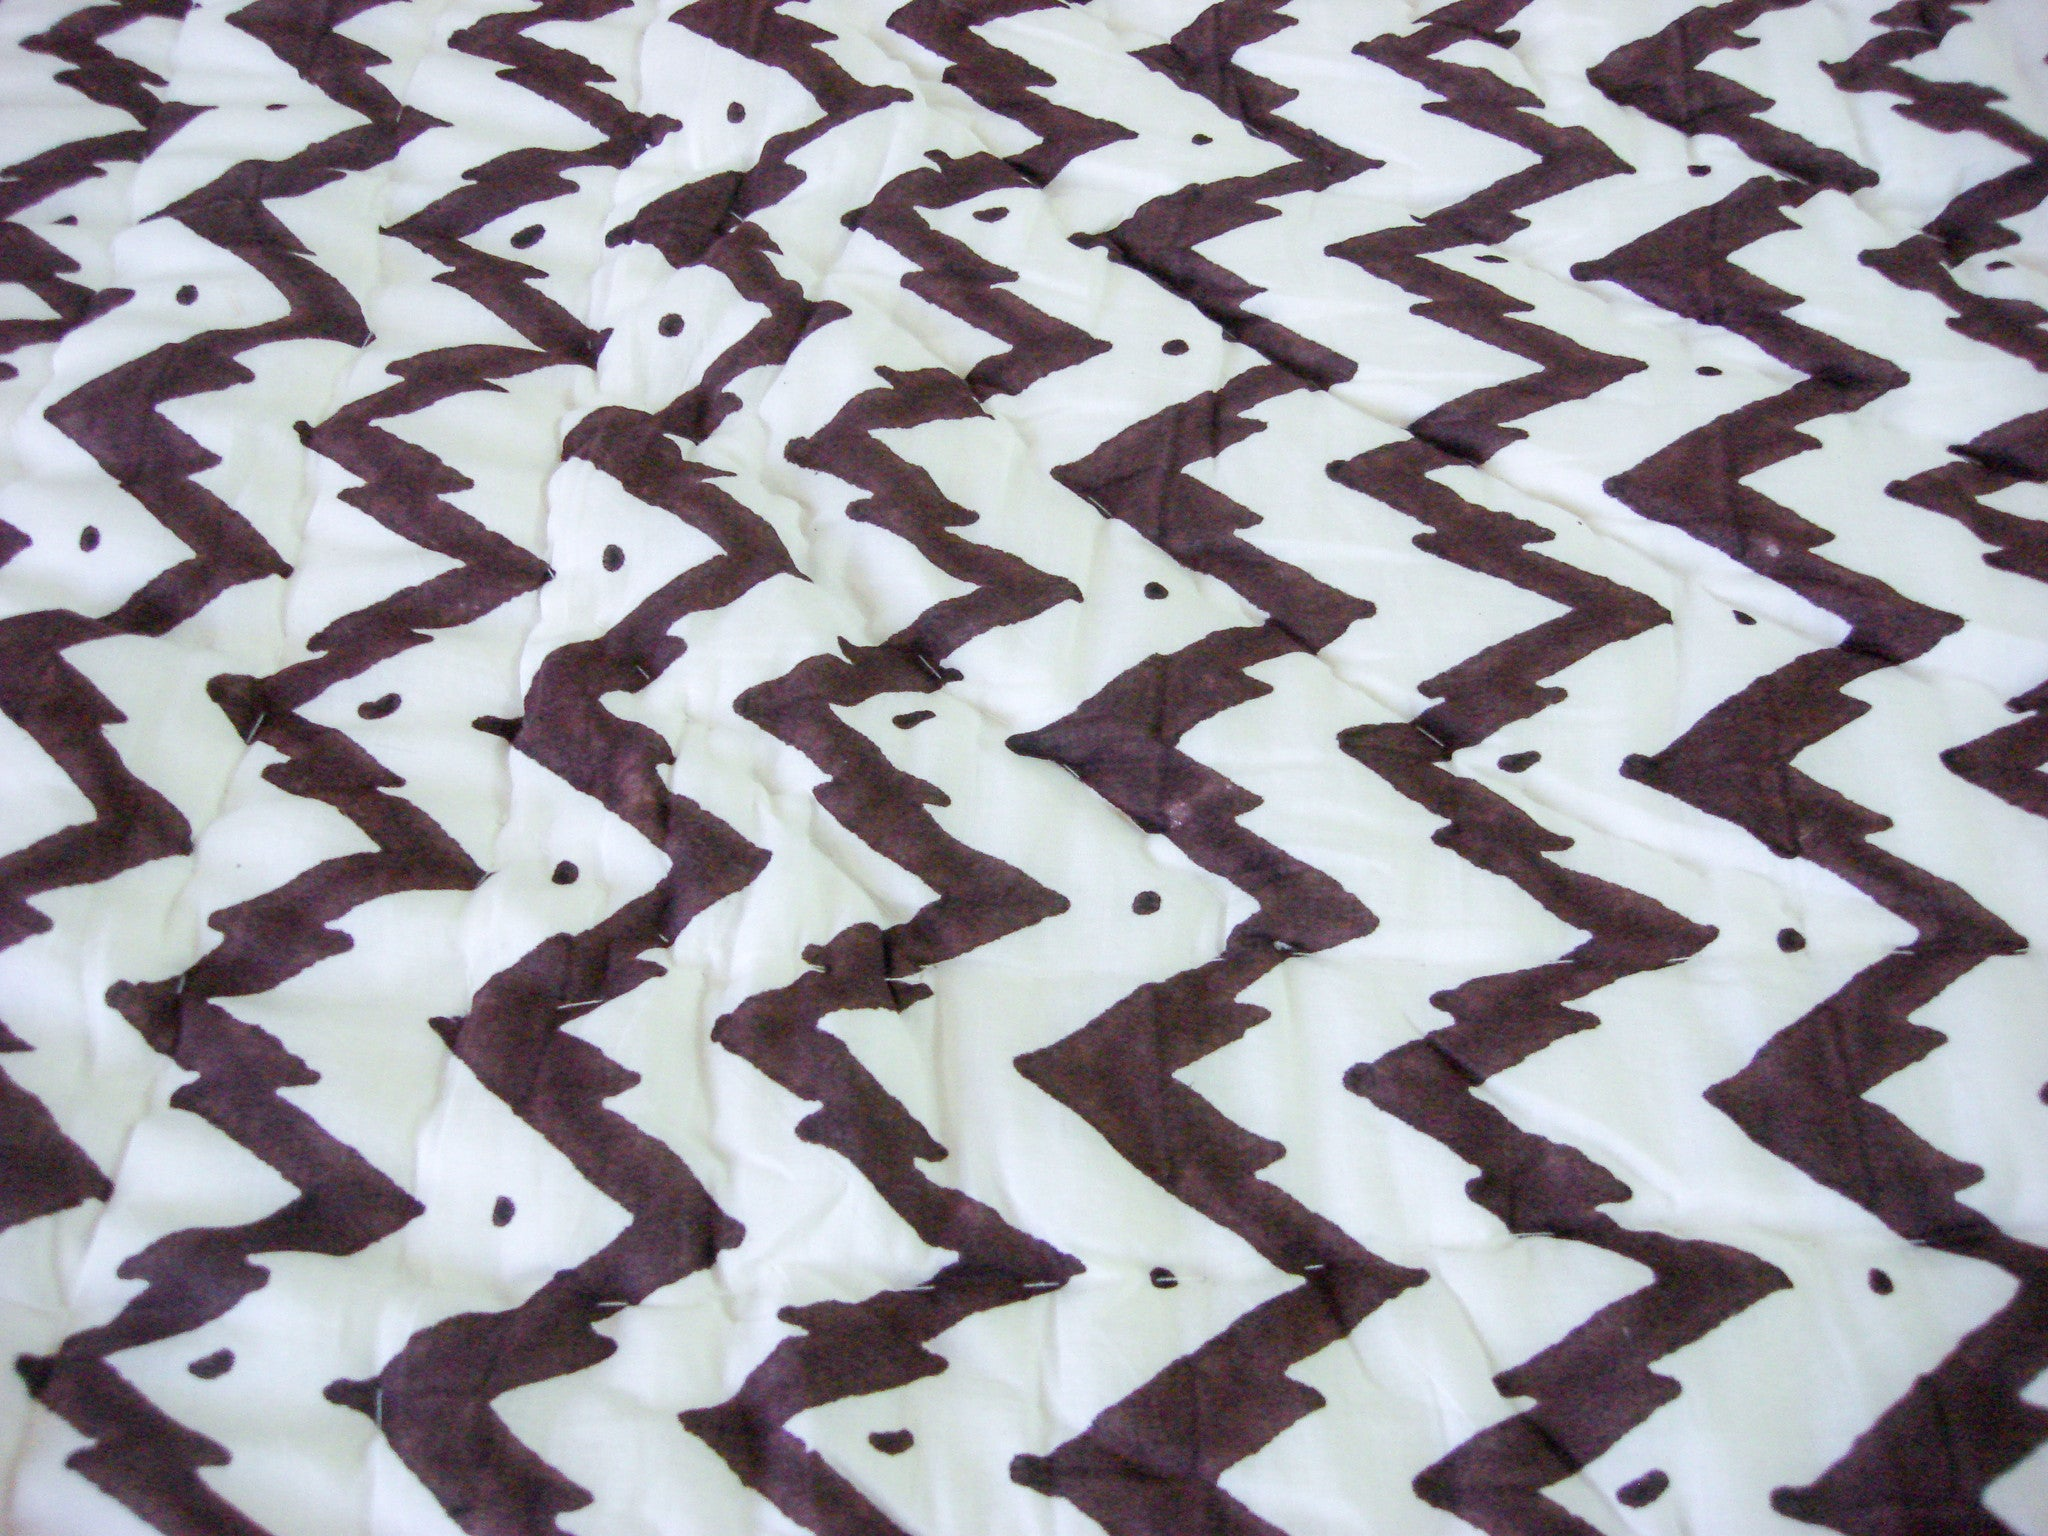 QBP 174 -100% Handmade Cotton Queen Quilt - Contrasting Brown Blocks - Pentagon Crafts